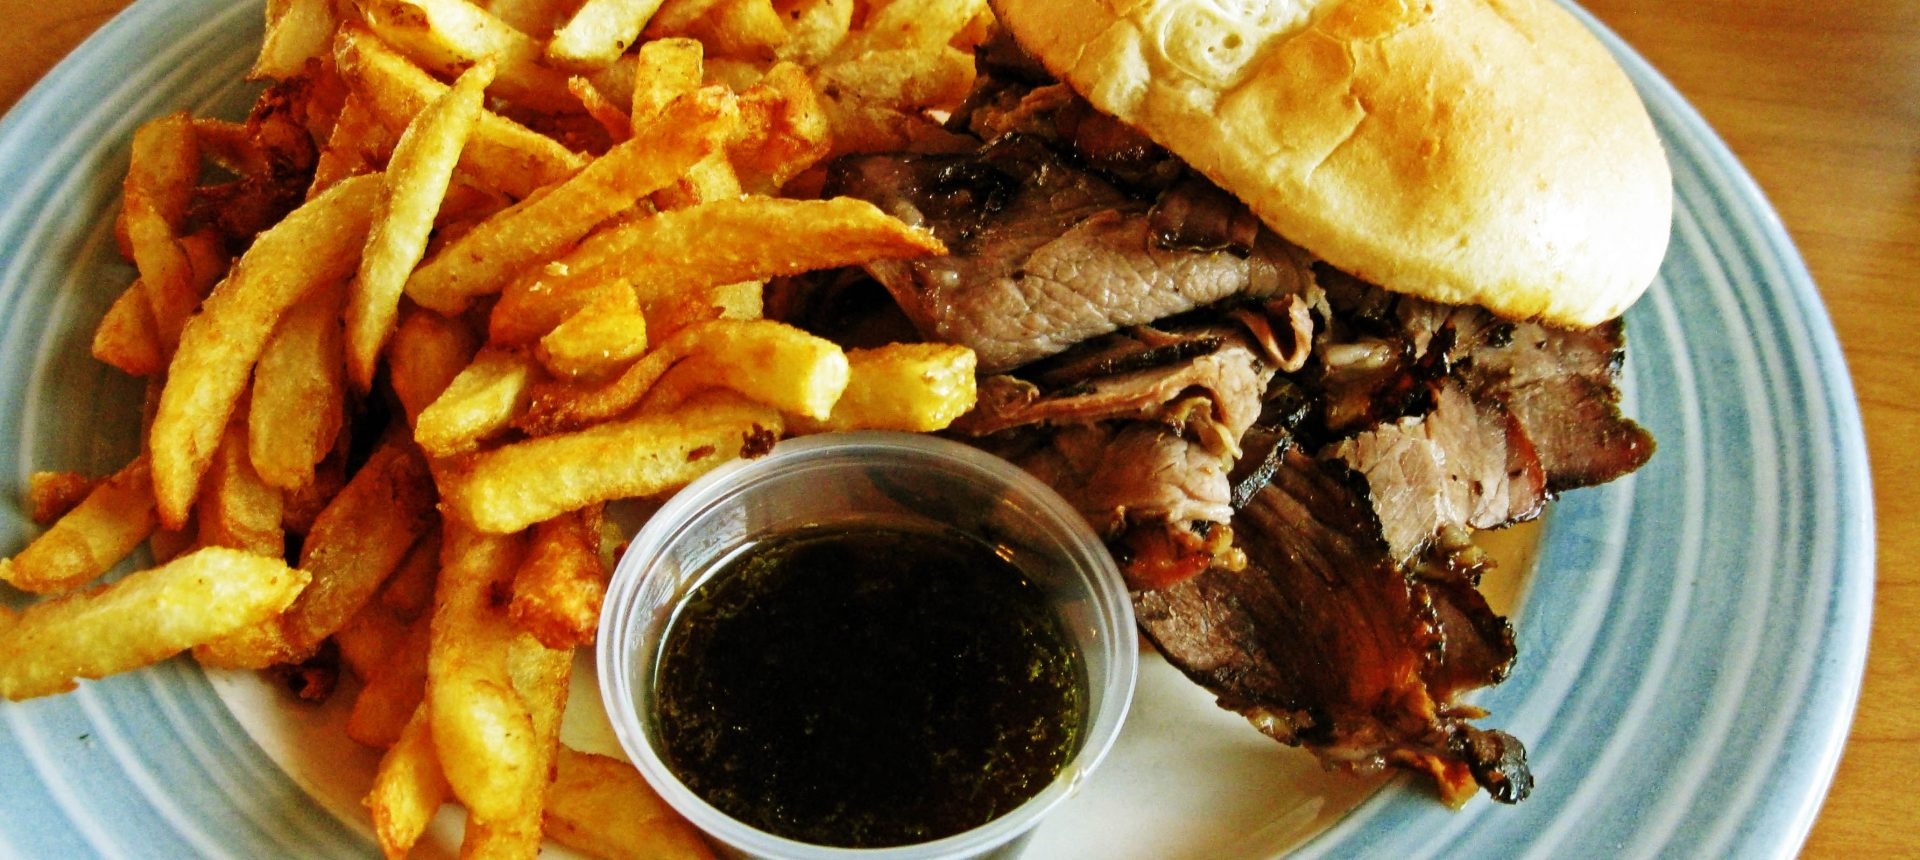 Take-Out & Catering Call (302) 633-6557